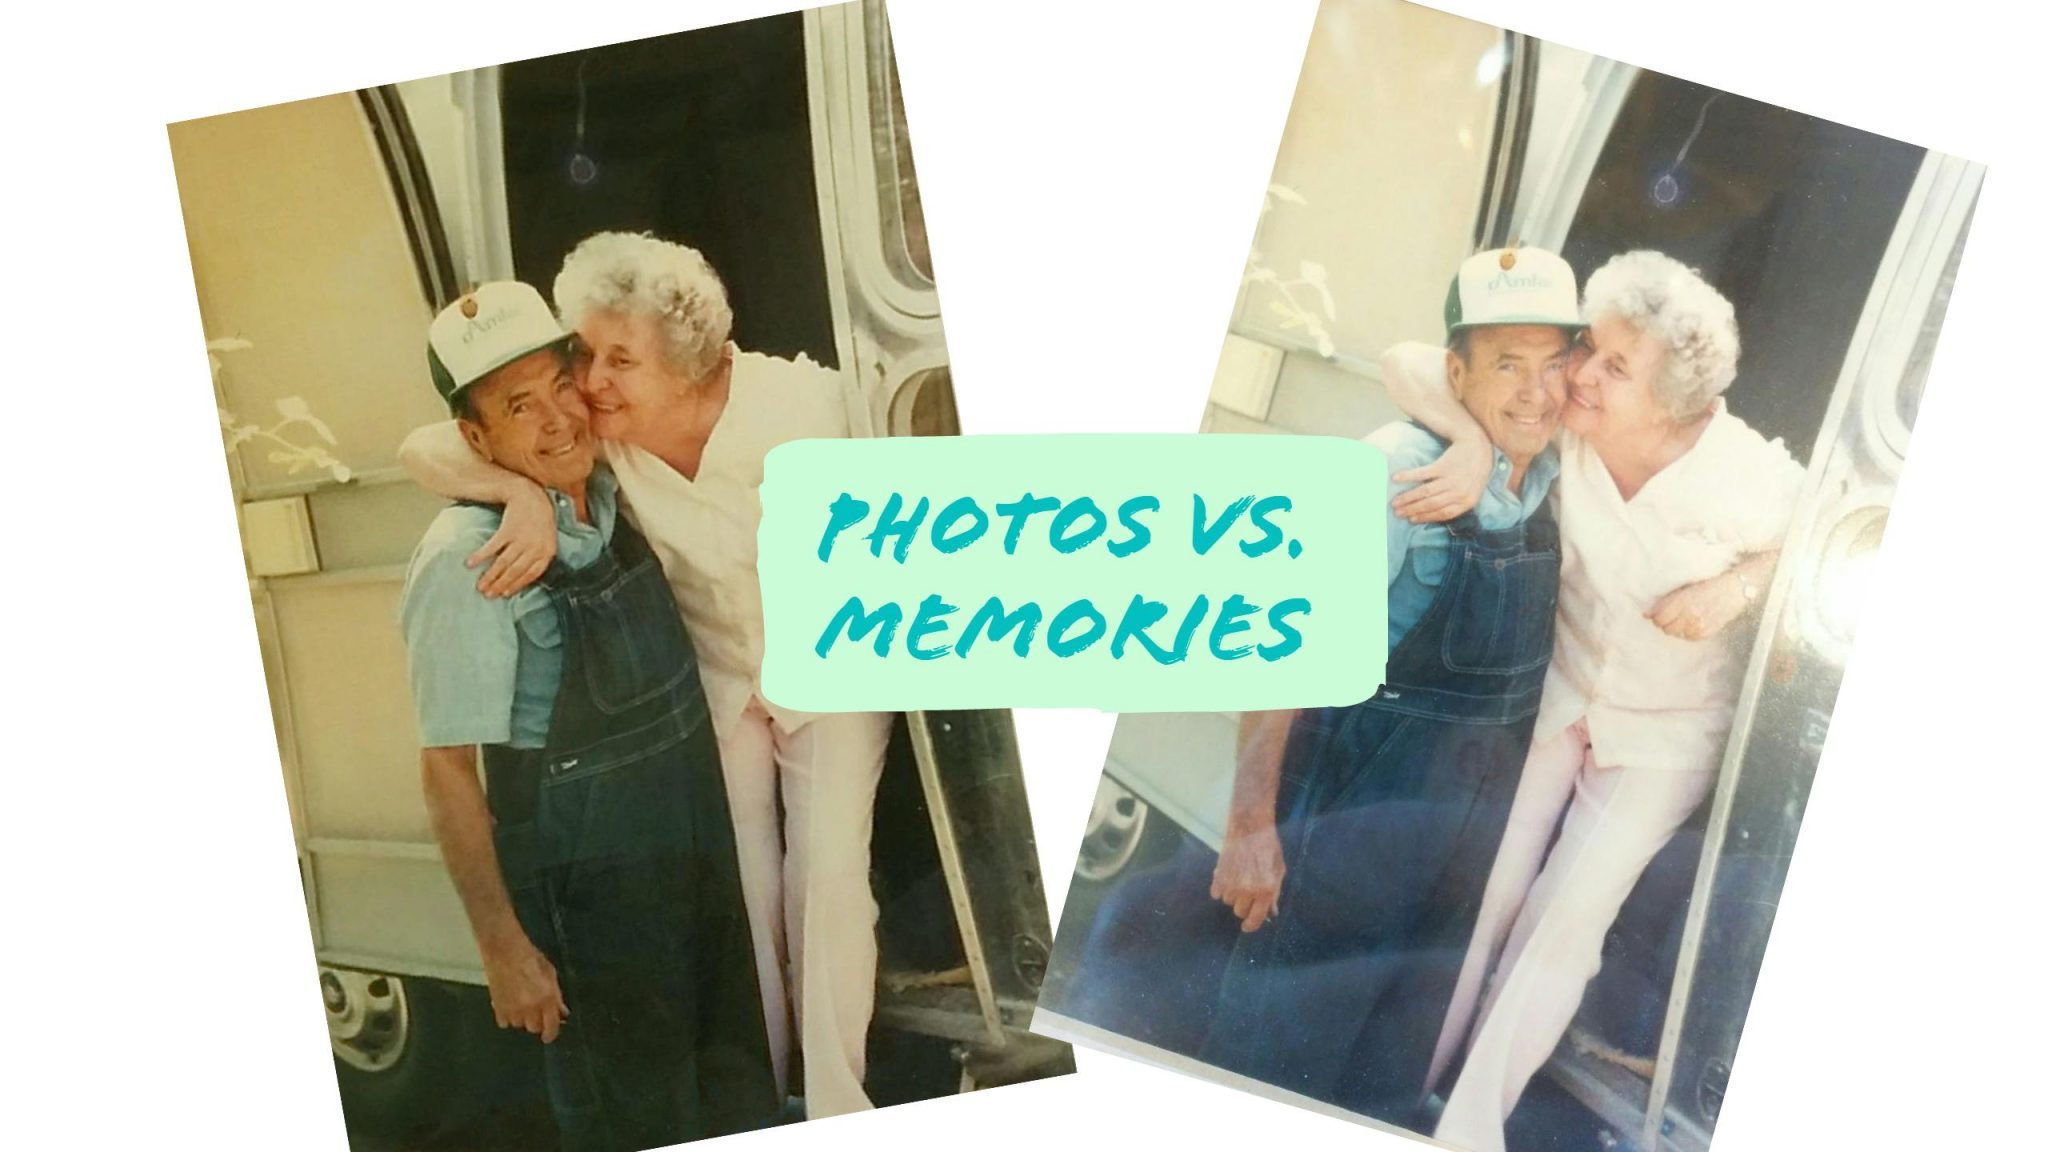 Family Search Memories vs. Google Photos